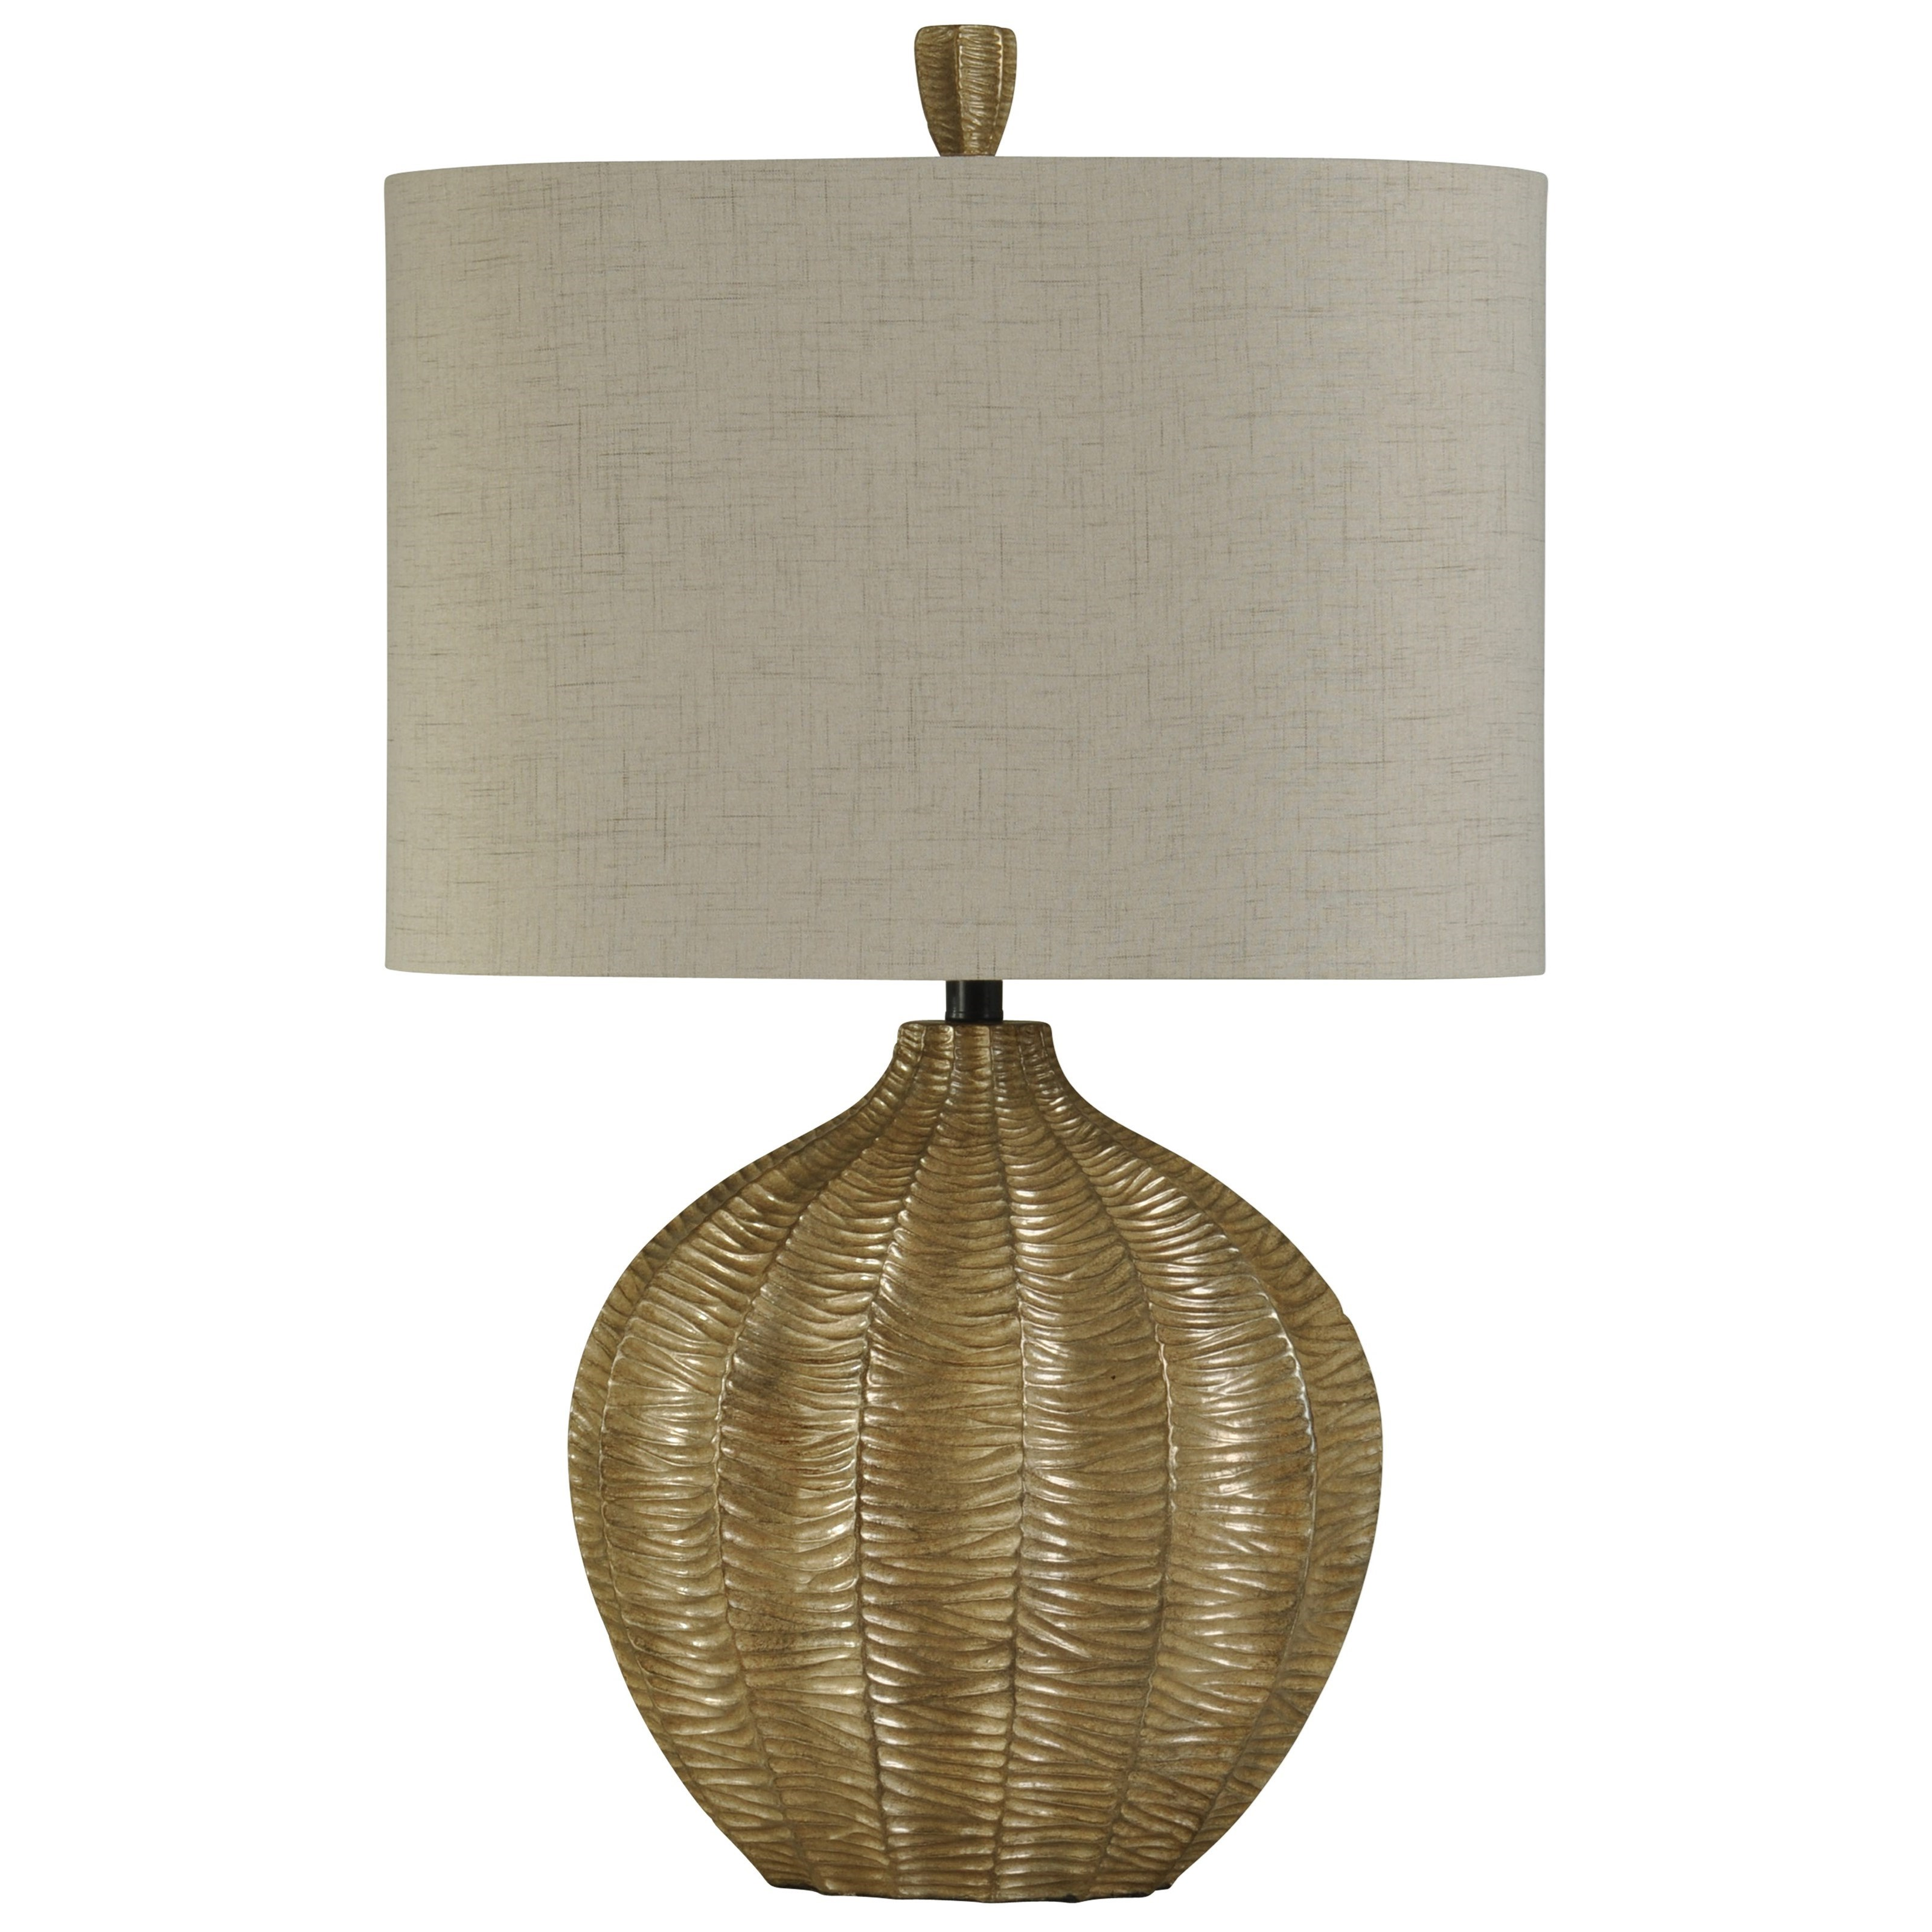 Lamps Hand Carved Contemporary Table Lamp Ruby Gordon